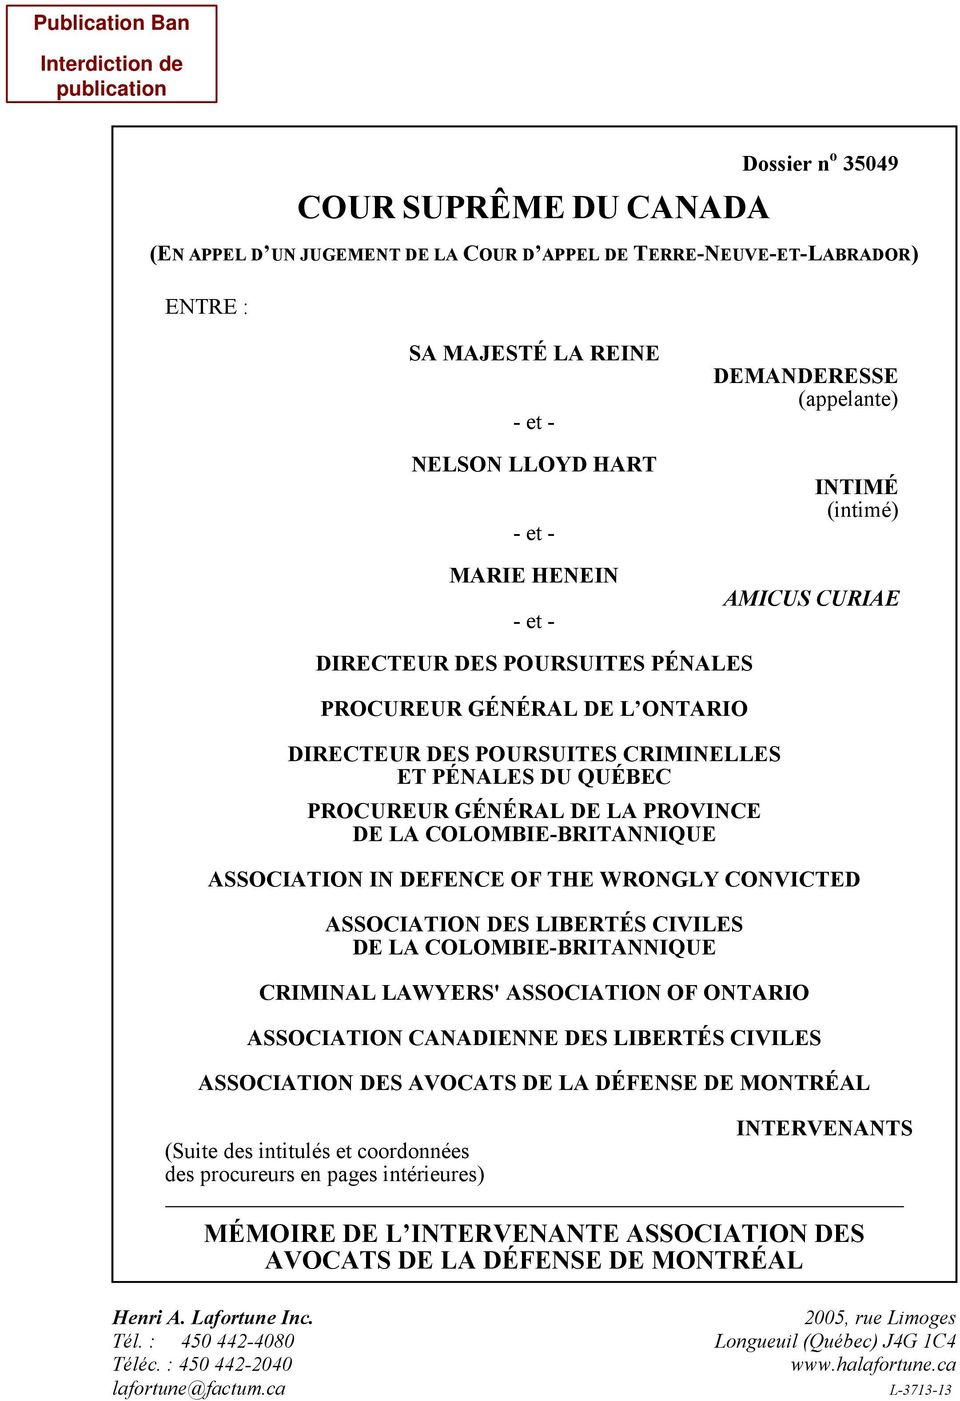 LA PROVINCE DE LA COLOMBIE-BRITANNIQUE ASSOCIATION IN DEFENCE OF THE WRONGLY CONVICTED ASSOCIATION DES LIBERTÉS CIVILES DE LA COLOMBIE-BRITANNIQUE CRIMINAL LAWYERS' ASSOCIATION OF ONTARIO ASSOCIATION